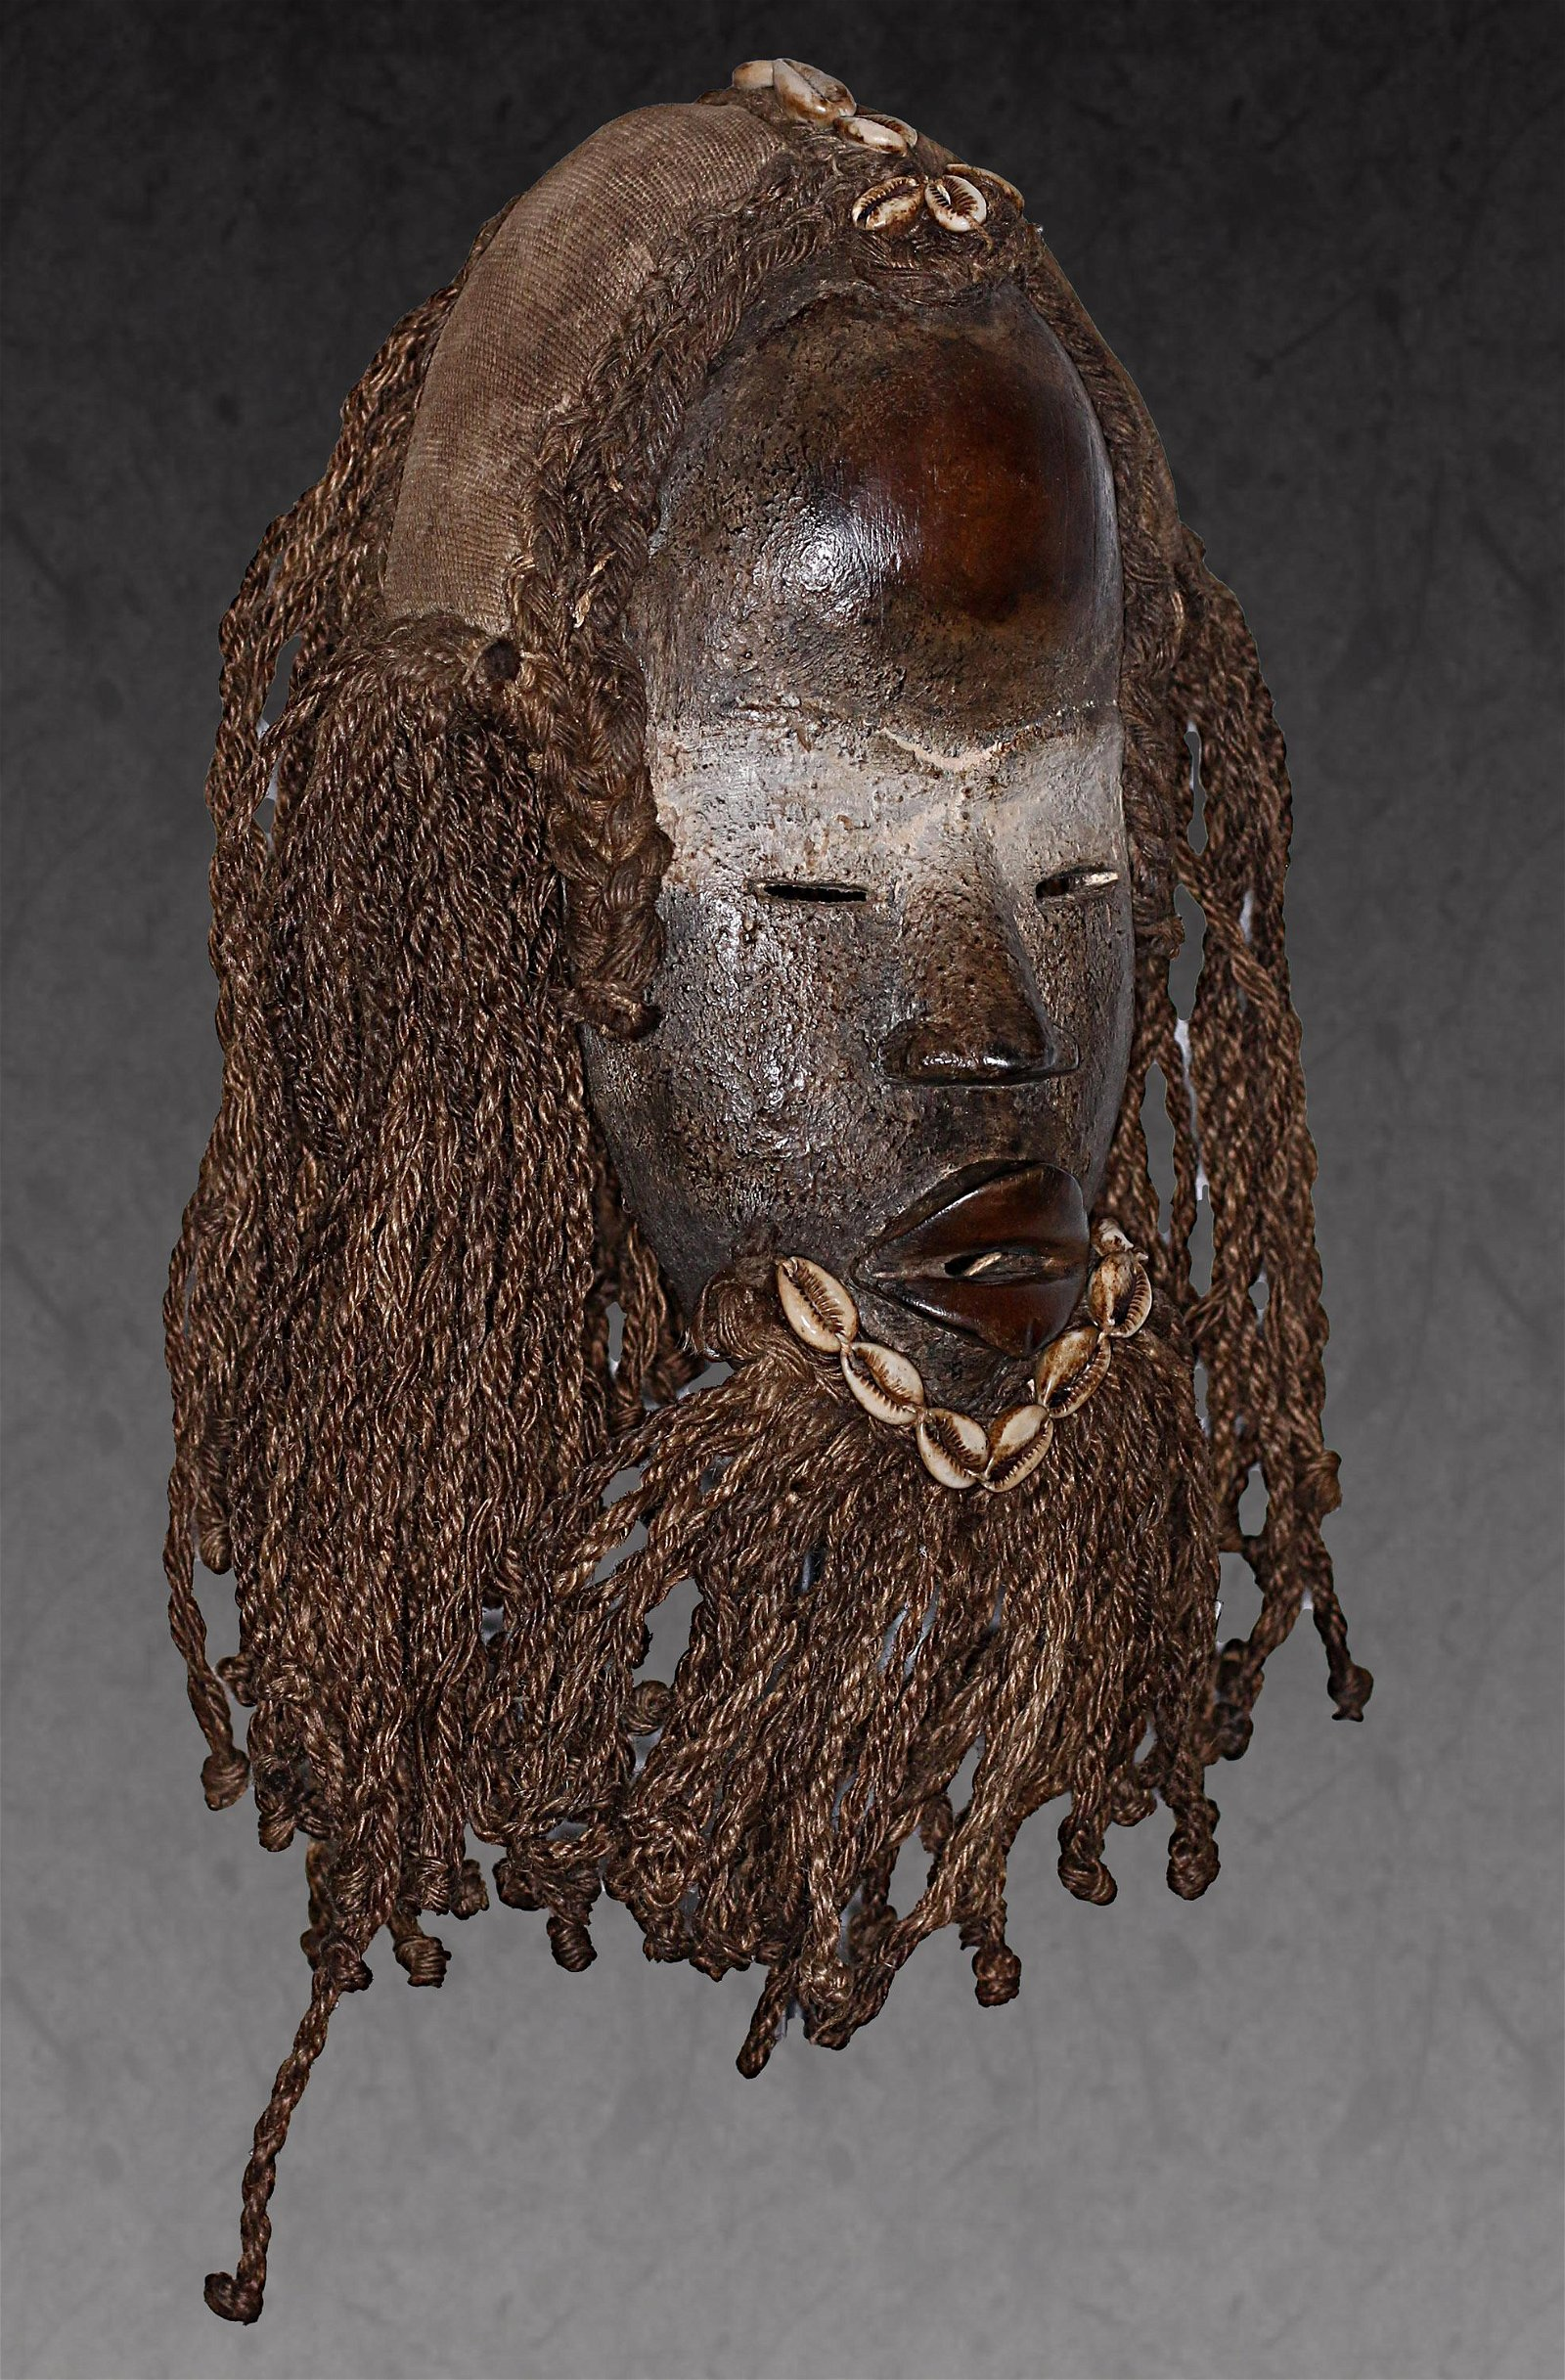 IVORY COAST Dan people Carved wooden mask ornate with